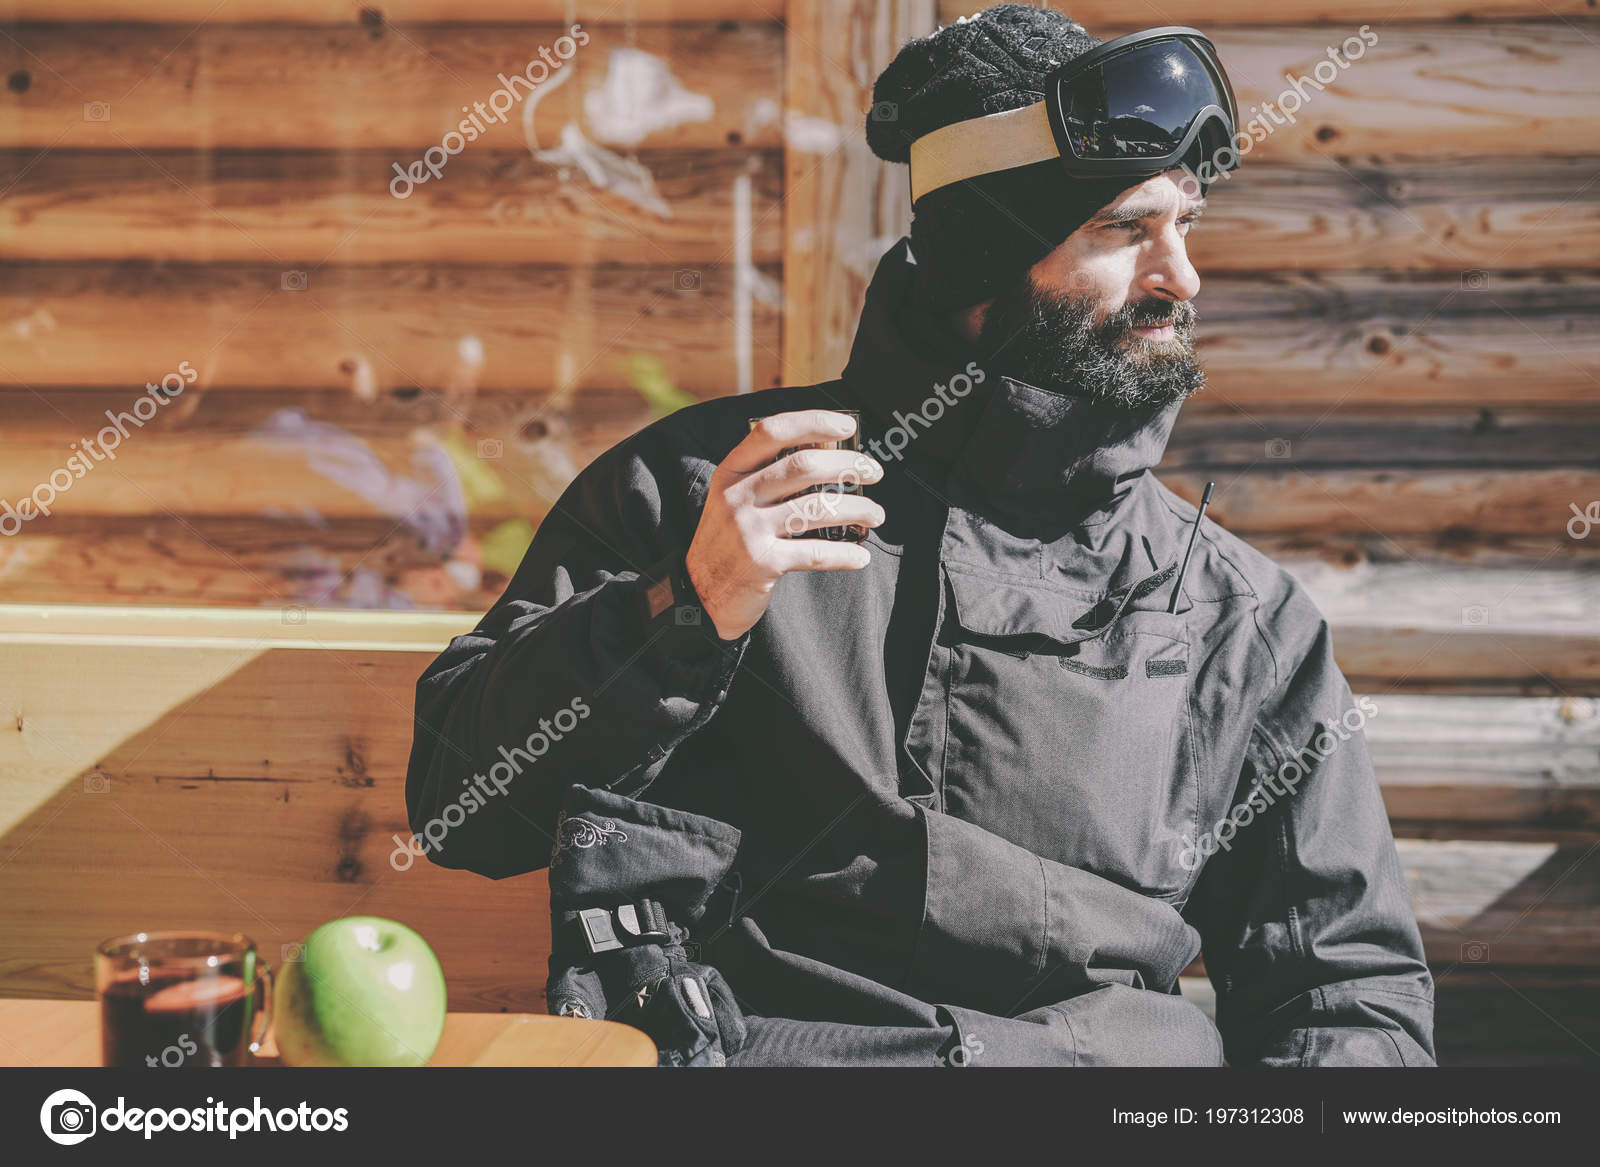 Bearded cool snowboarded taking rest after ride session